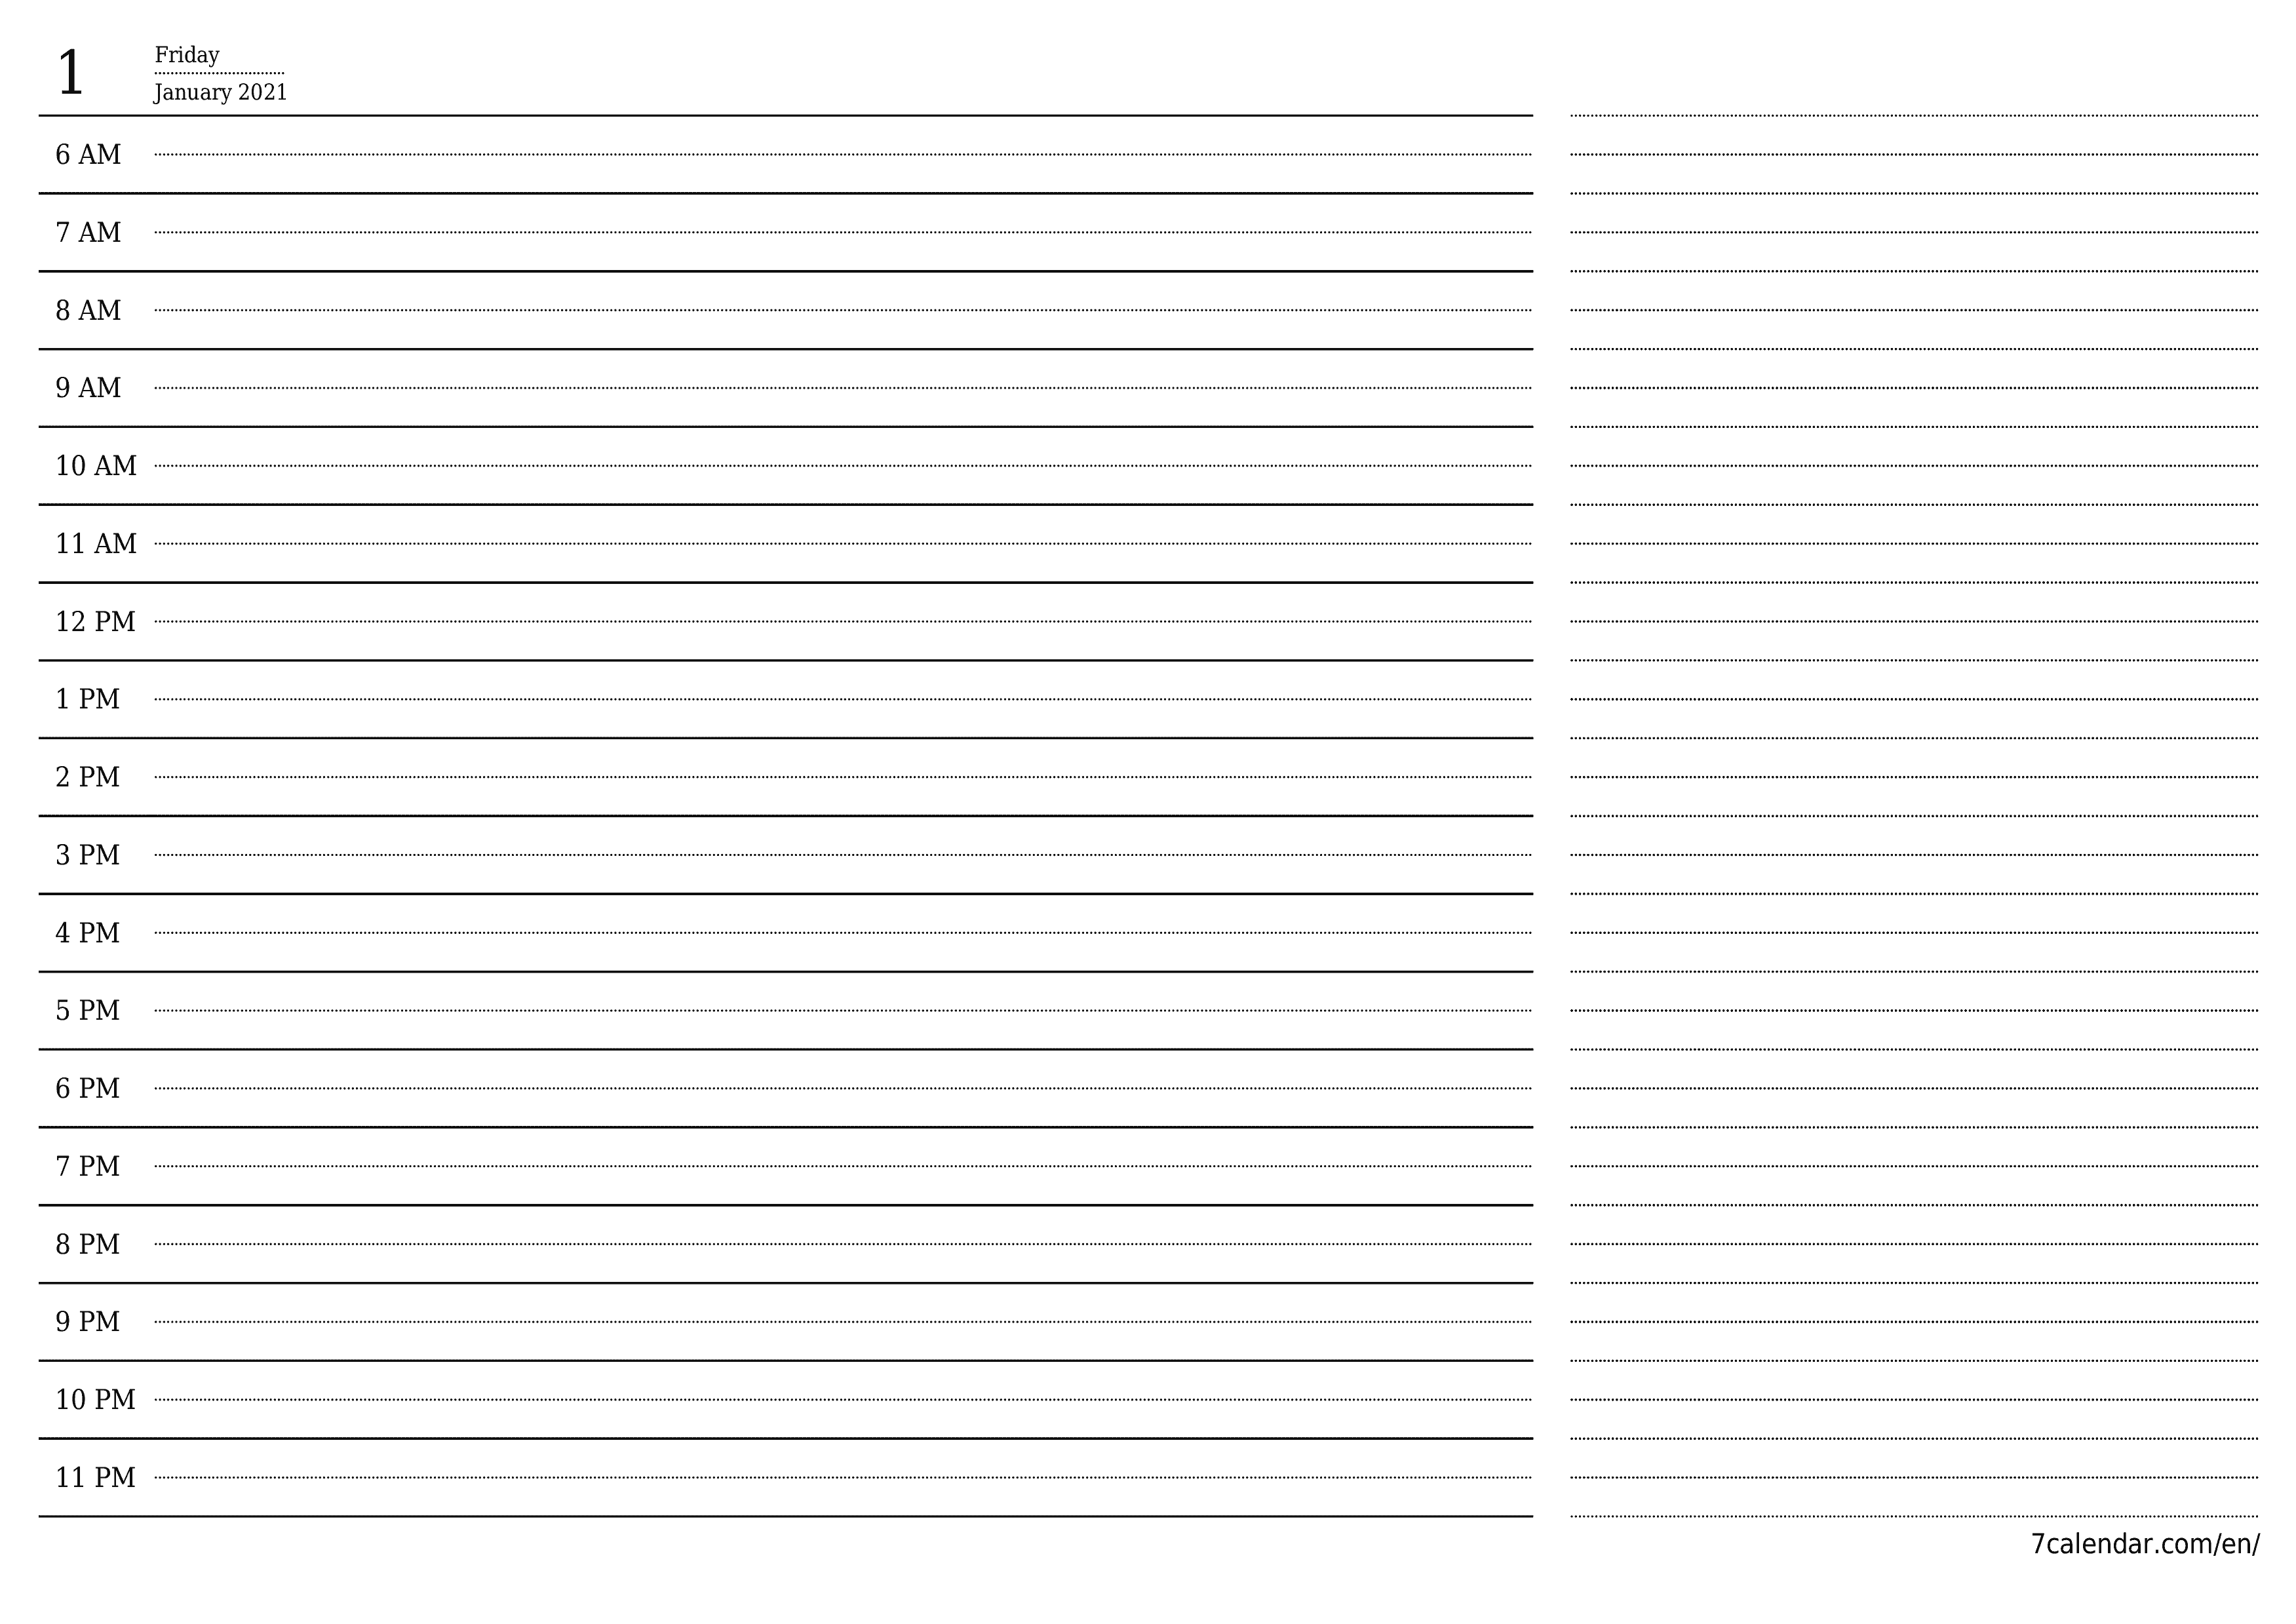 Blank daily calendar planner for day January 2021 with notes, save and print to PDF  - 7calendar.com